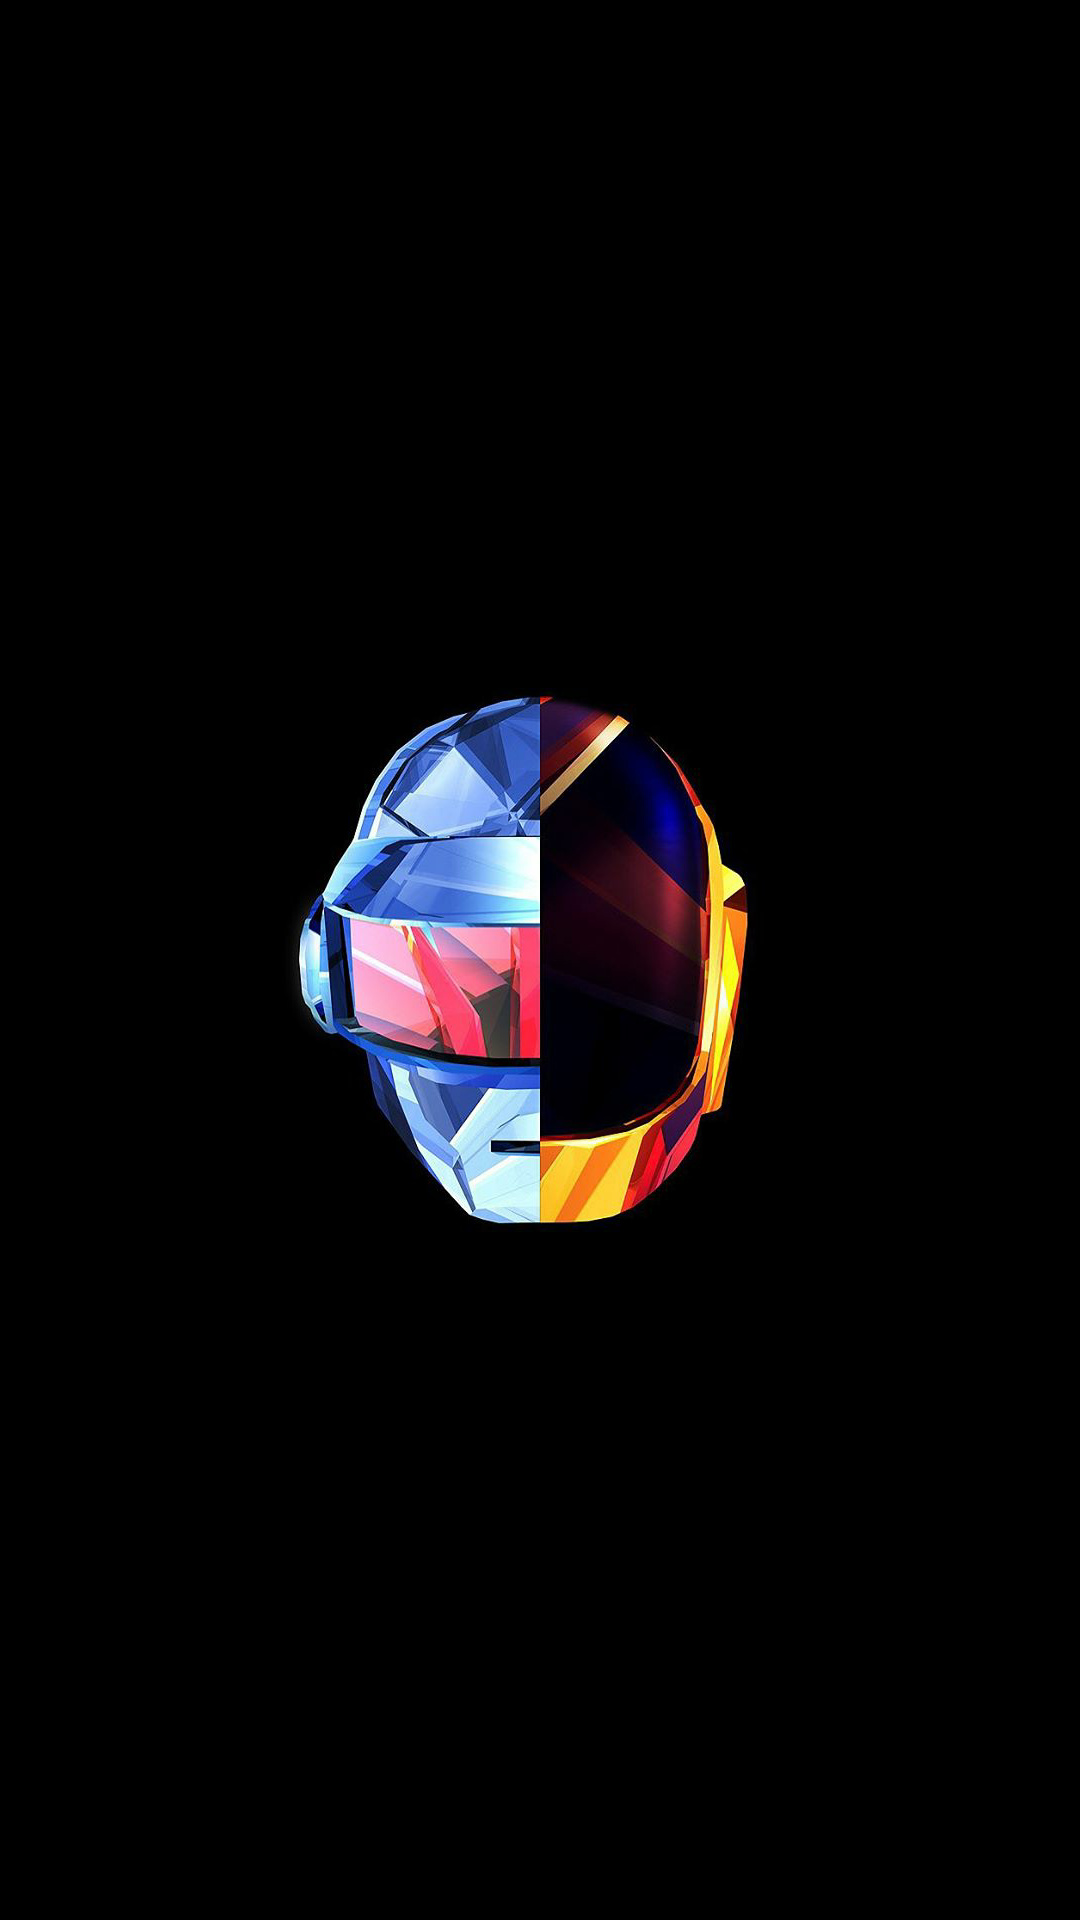 Daft Punk Wallpaper for iPhone 11, Pro Max, X, 8, 7, 6 ...